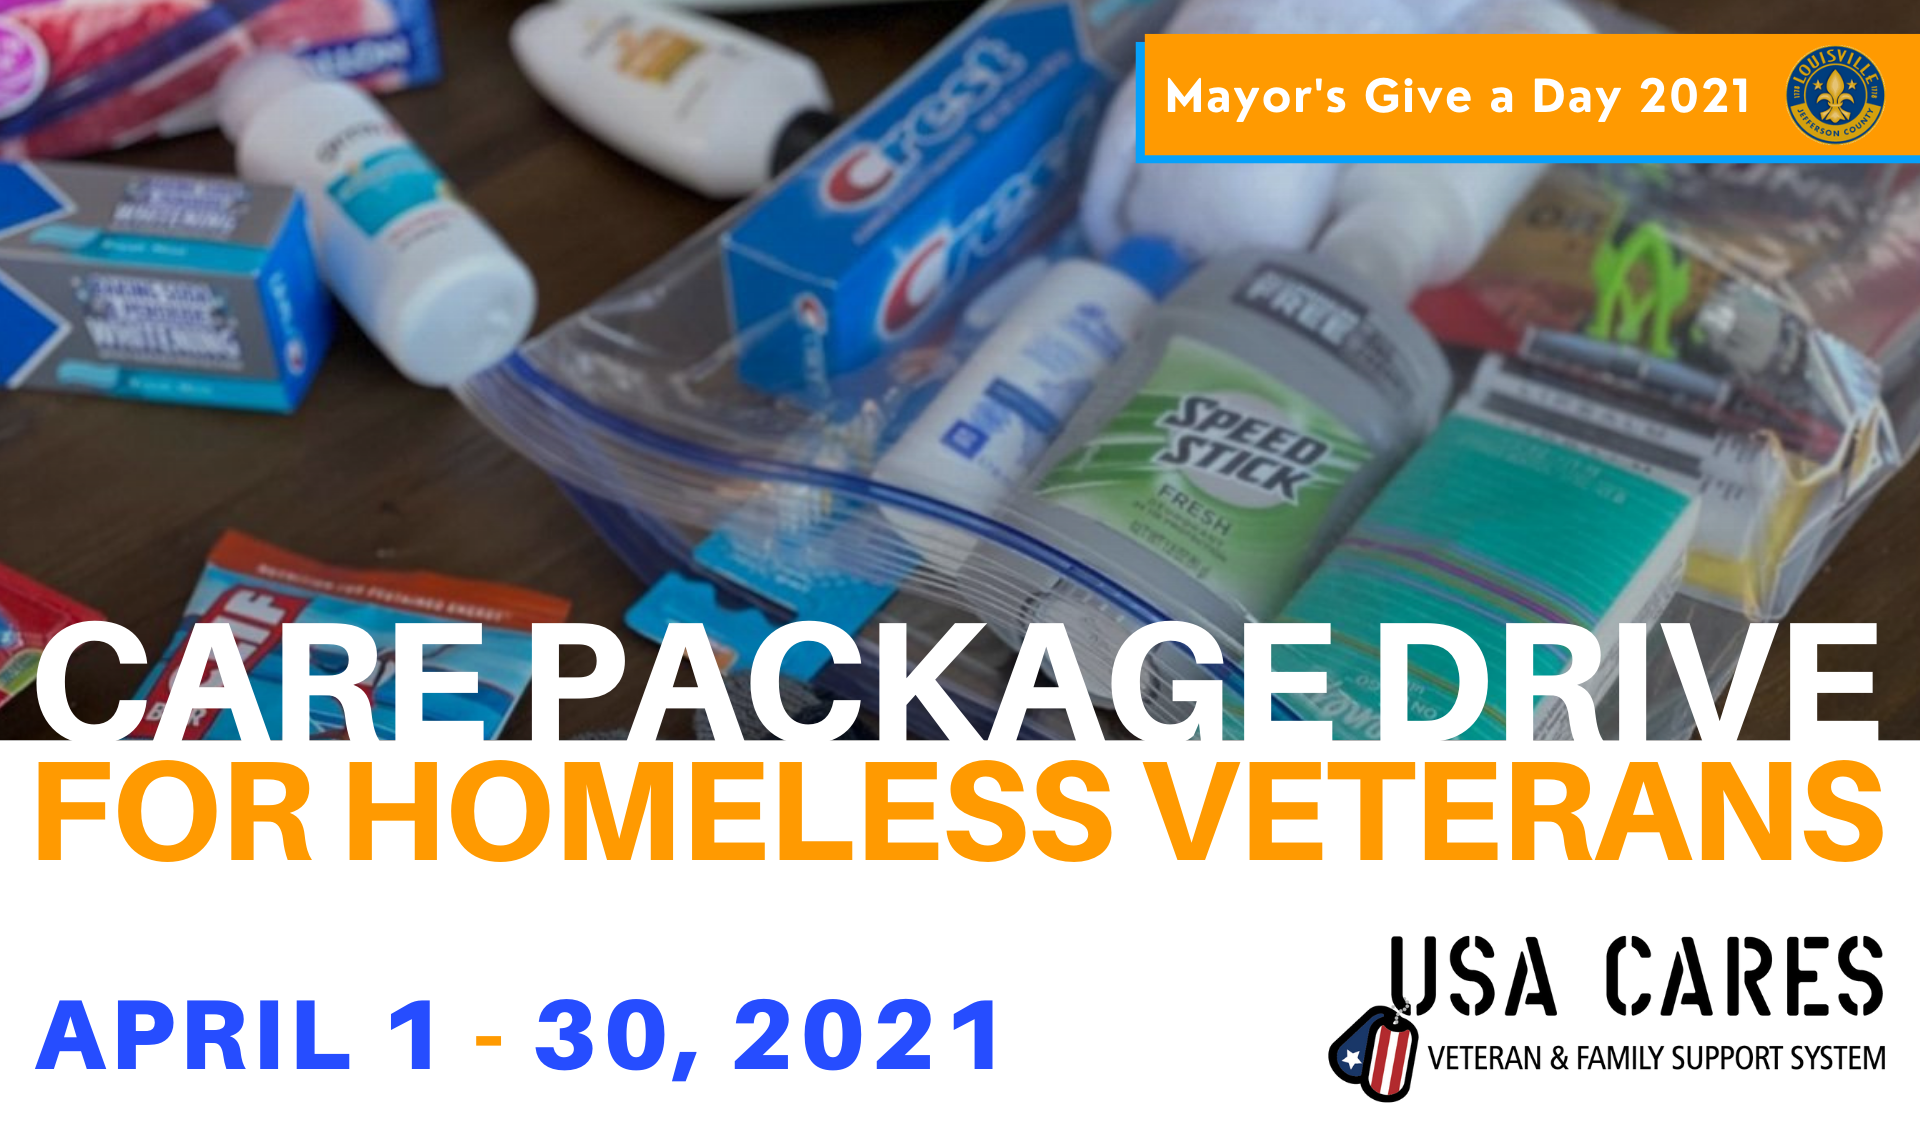 cover image for care packages, hero image for care package drive, blessing bags for homeless, donation drive for homeless veterans.